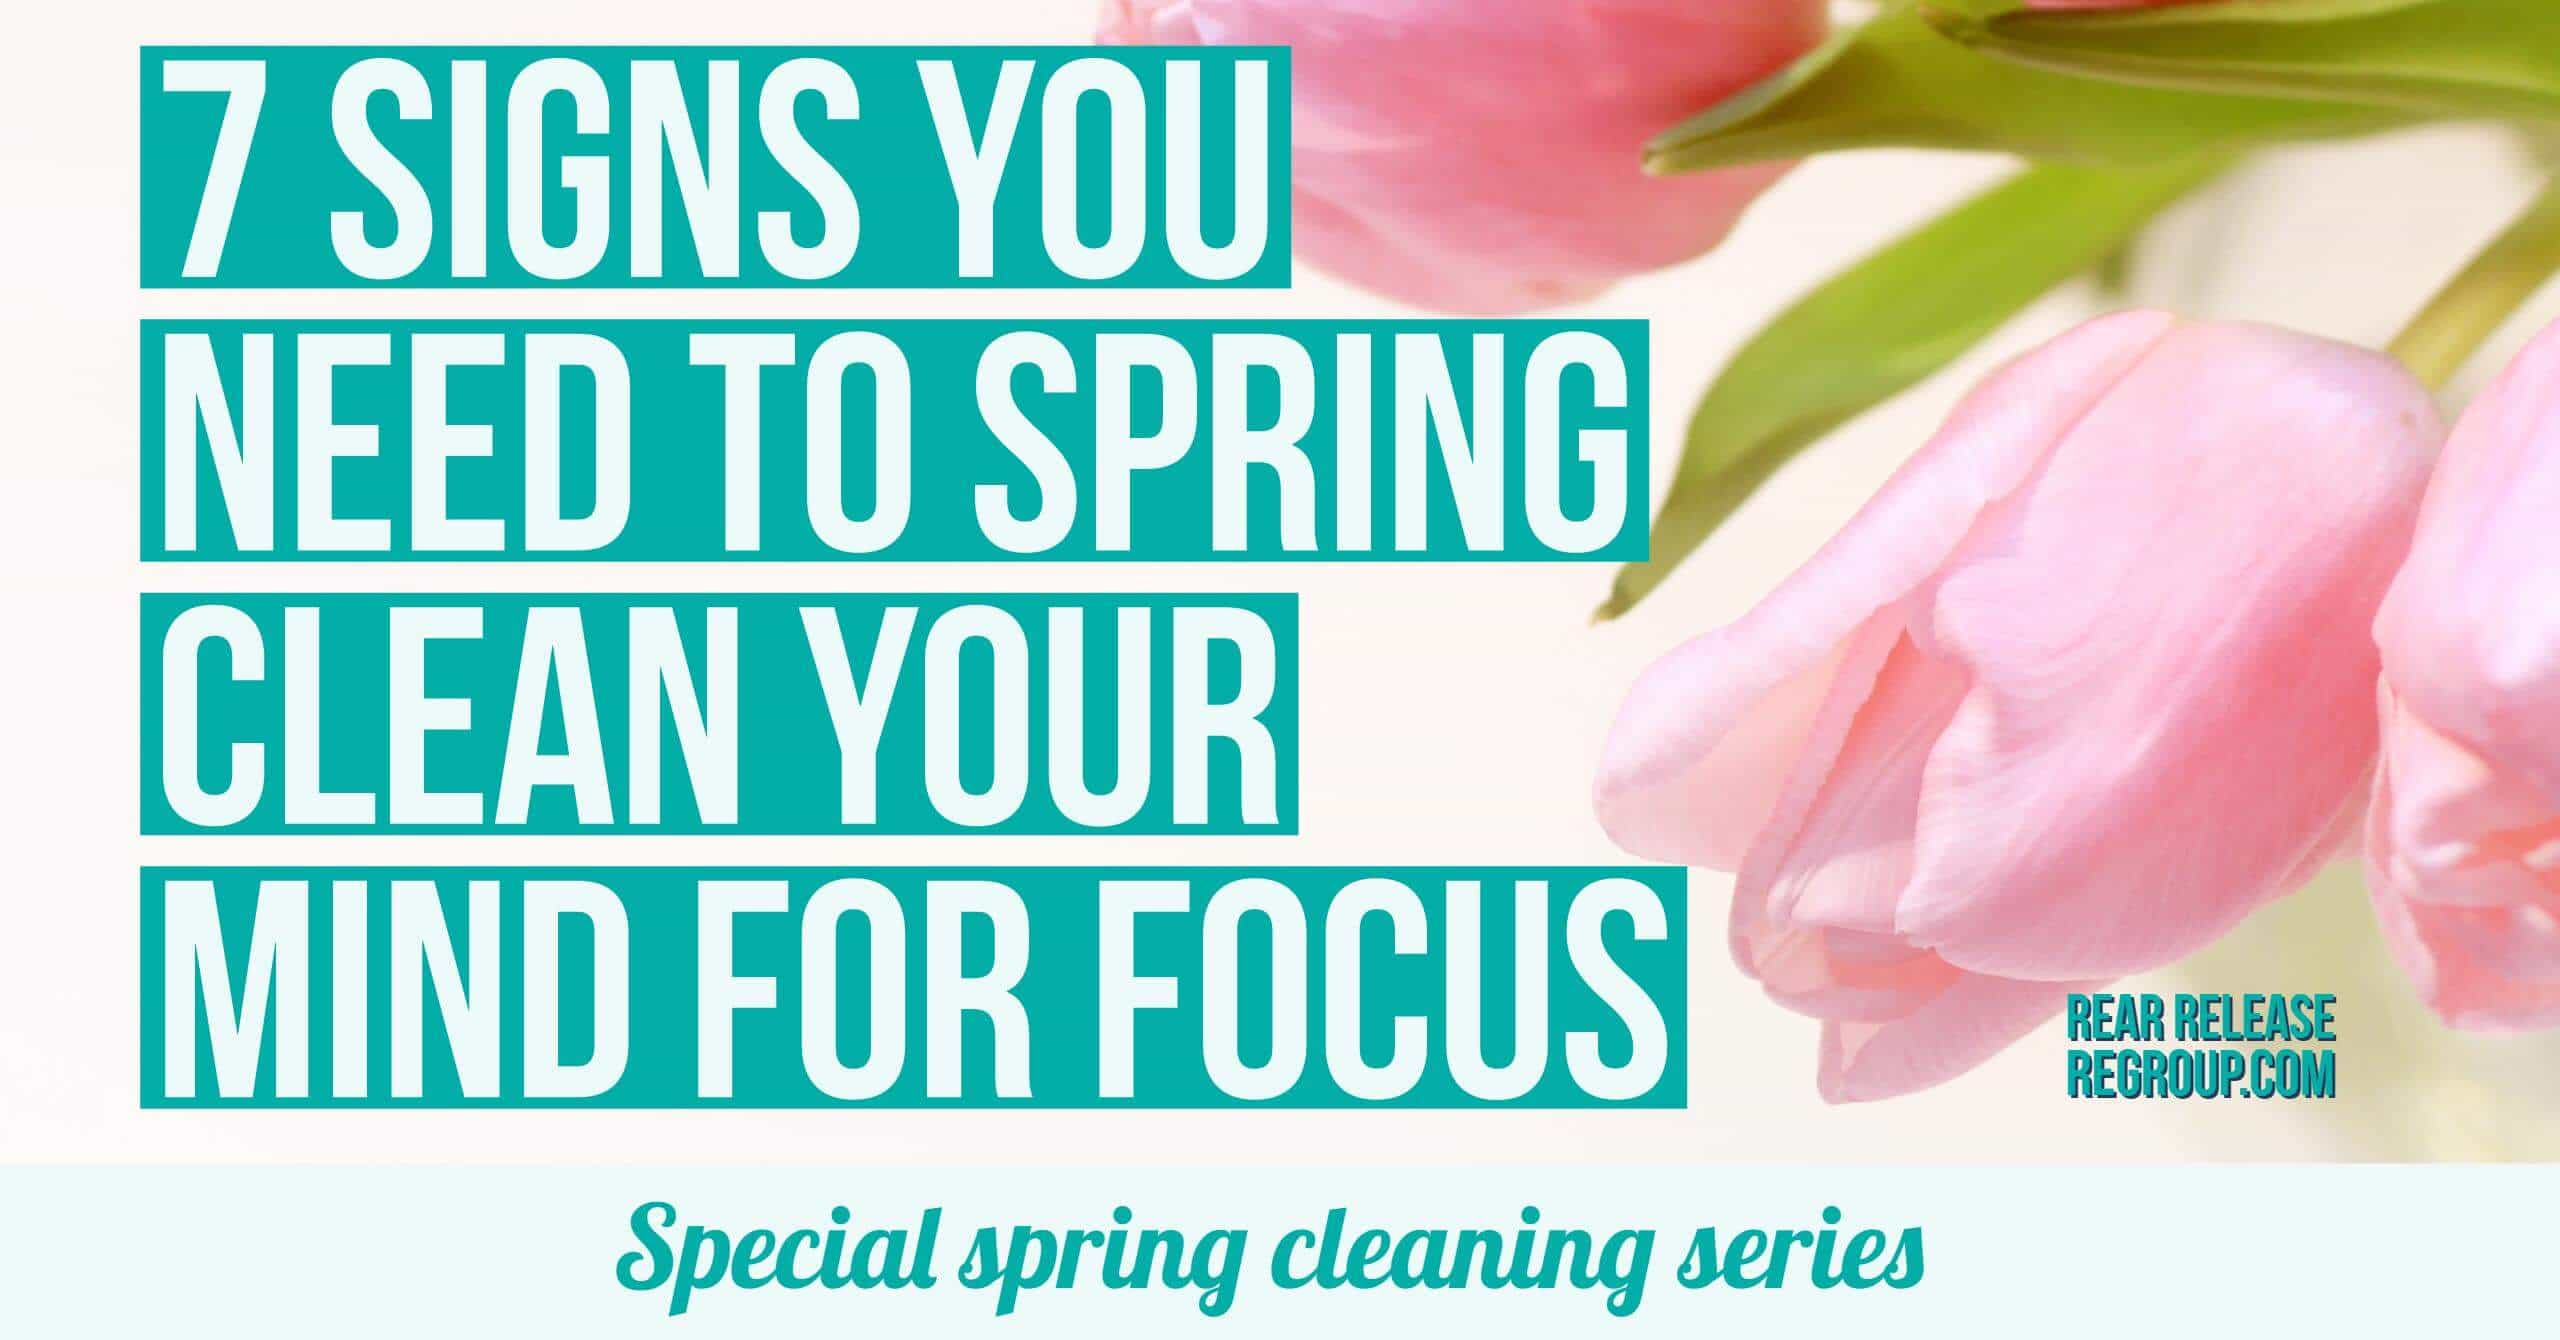 spring clean your mind for focus; 7 indications you need to clear